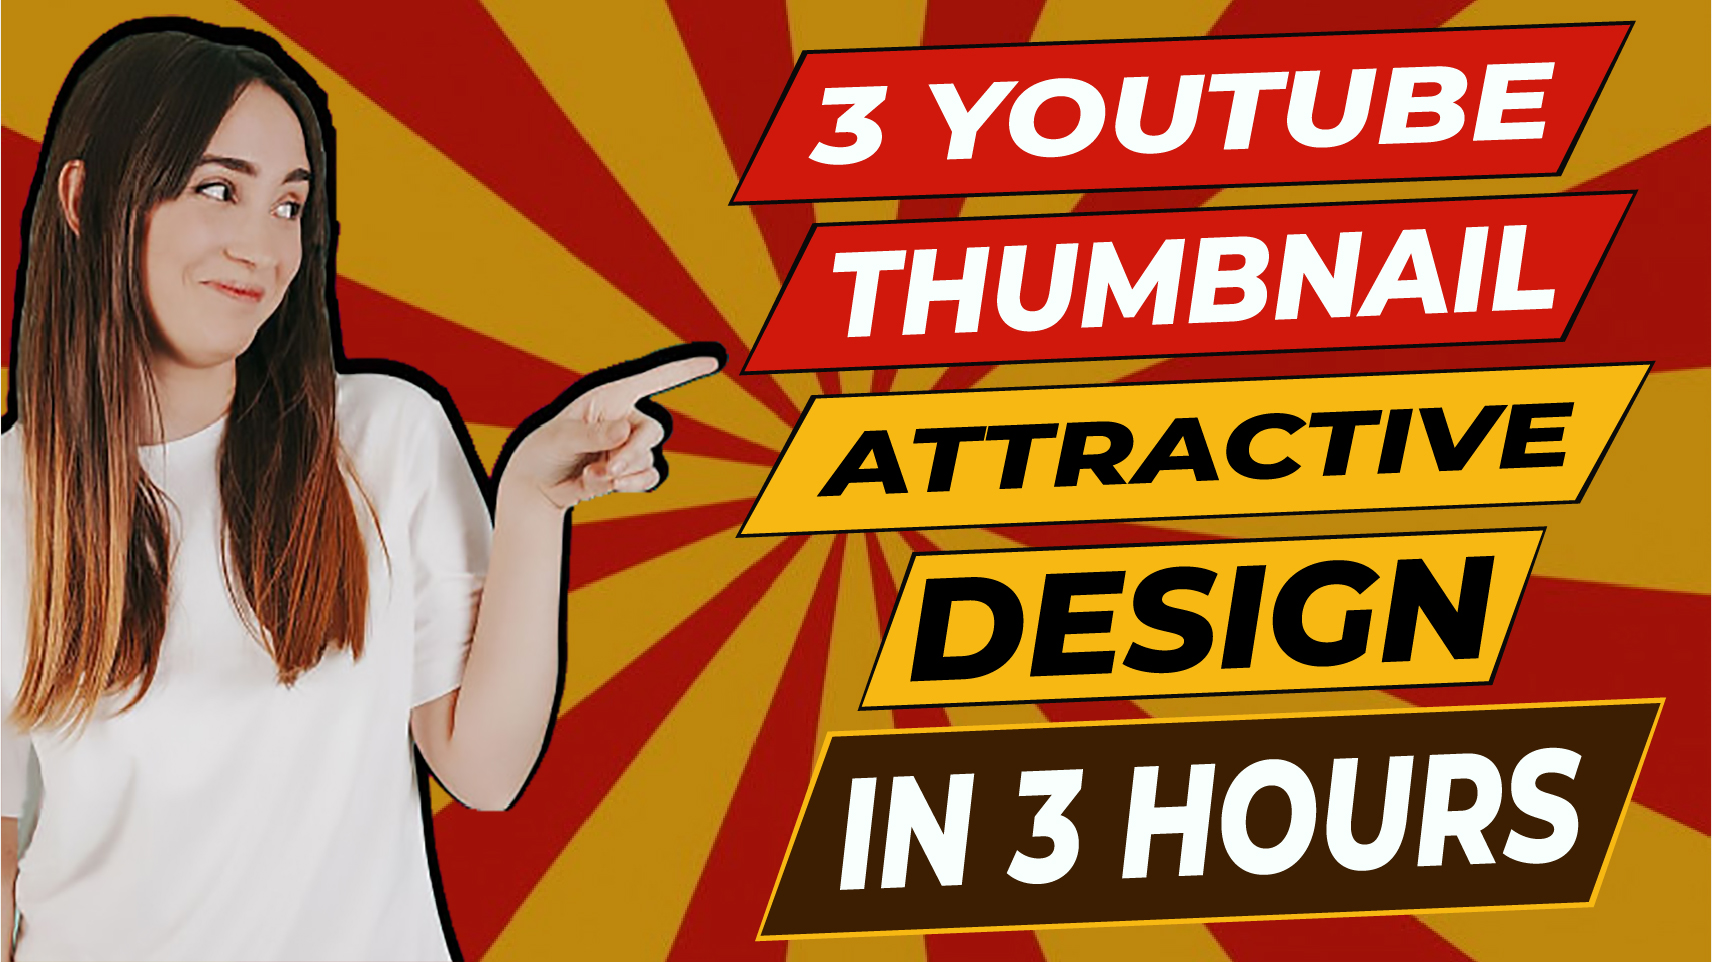 I will create design catchy youtube thumbnail for you within 2 hours